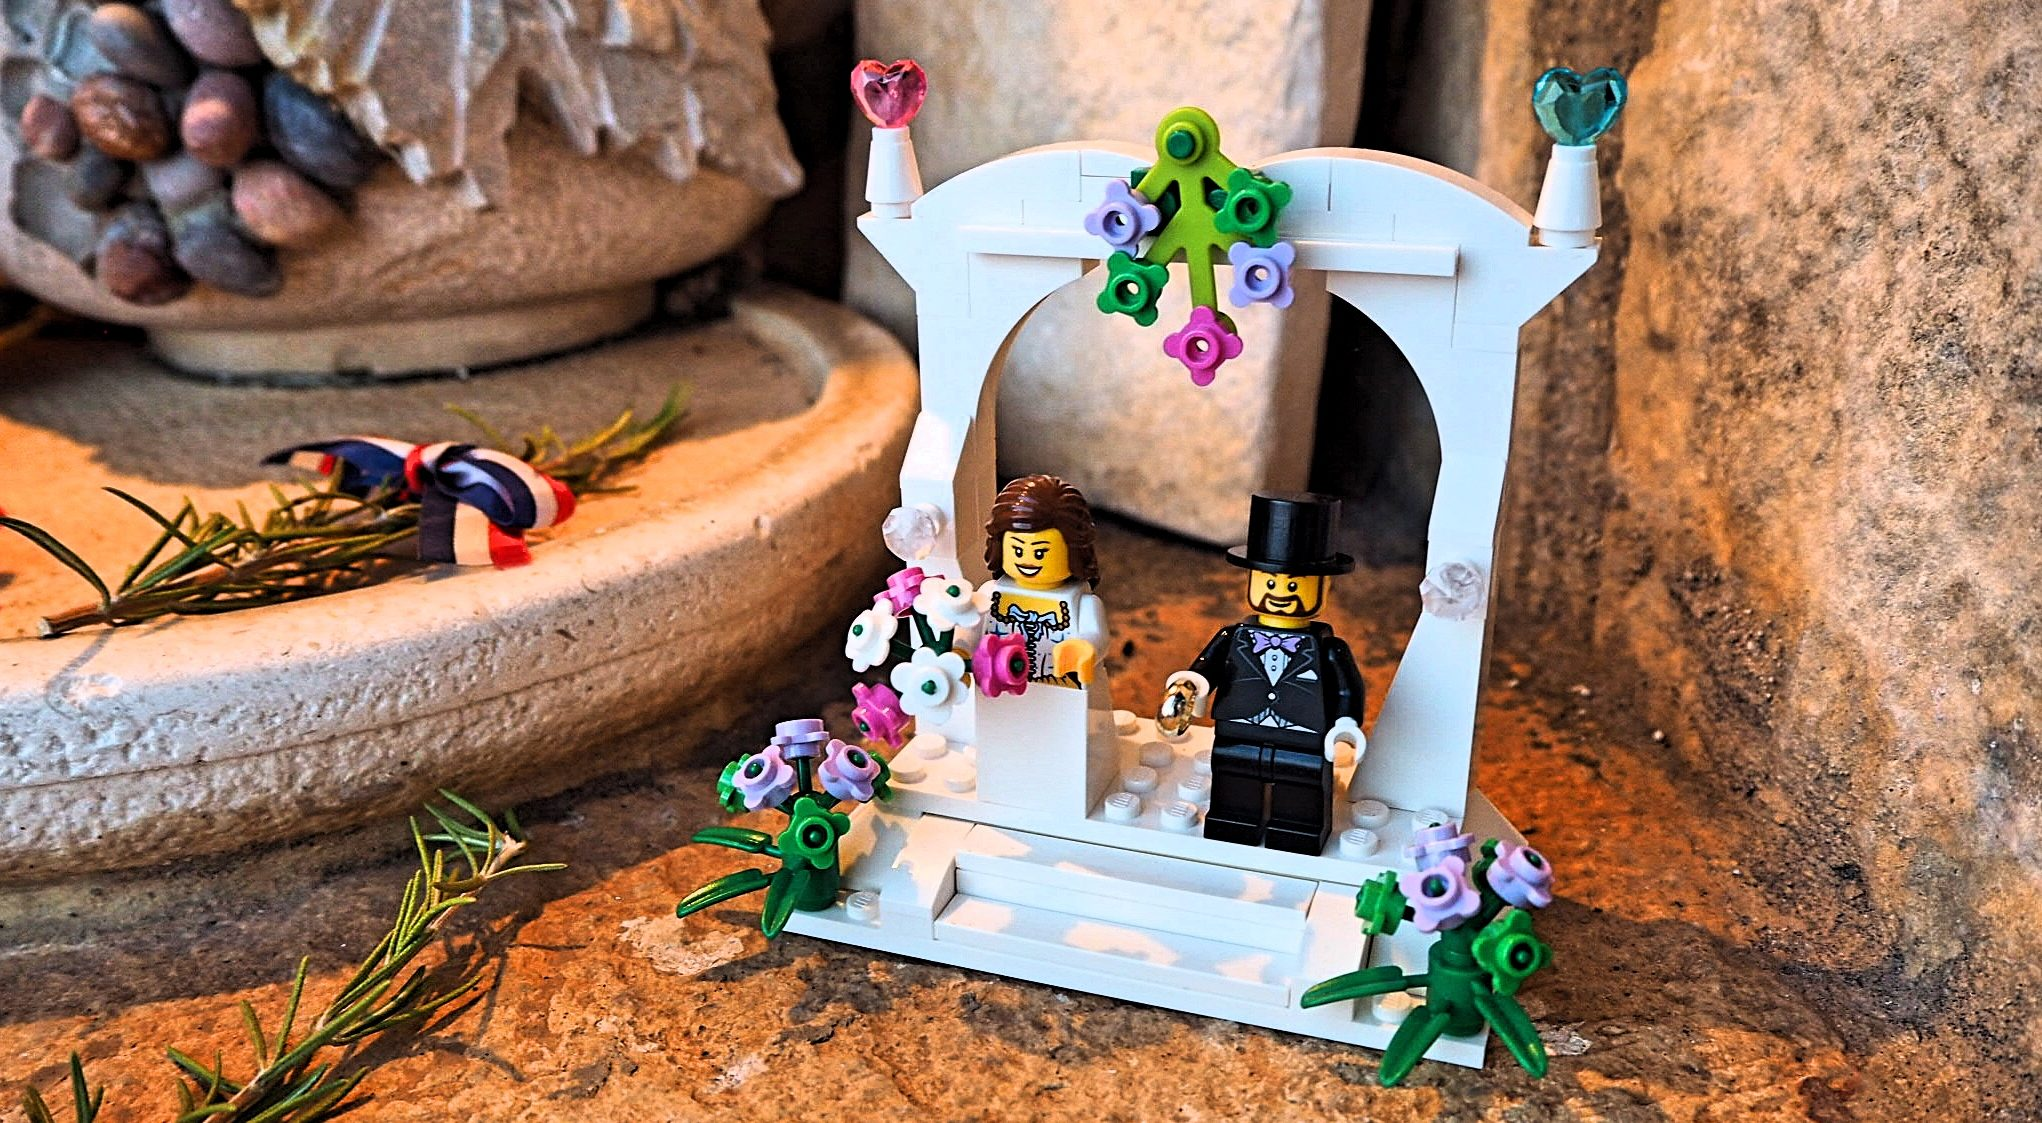 Croatian lego wedding decoration